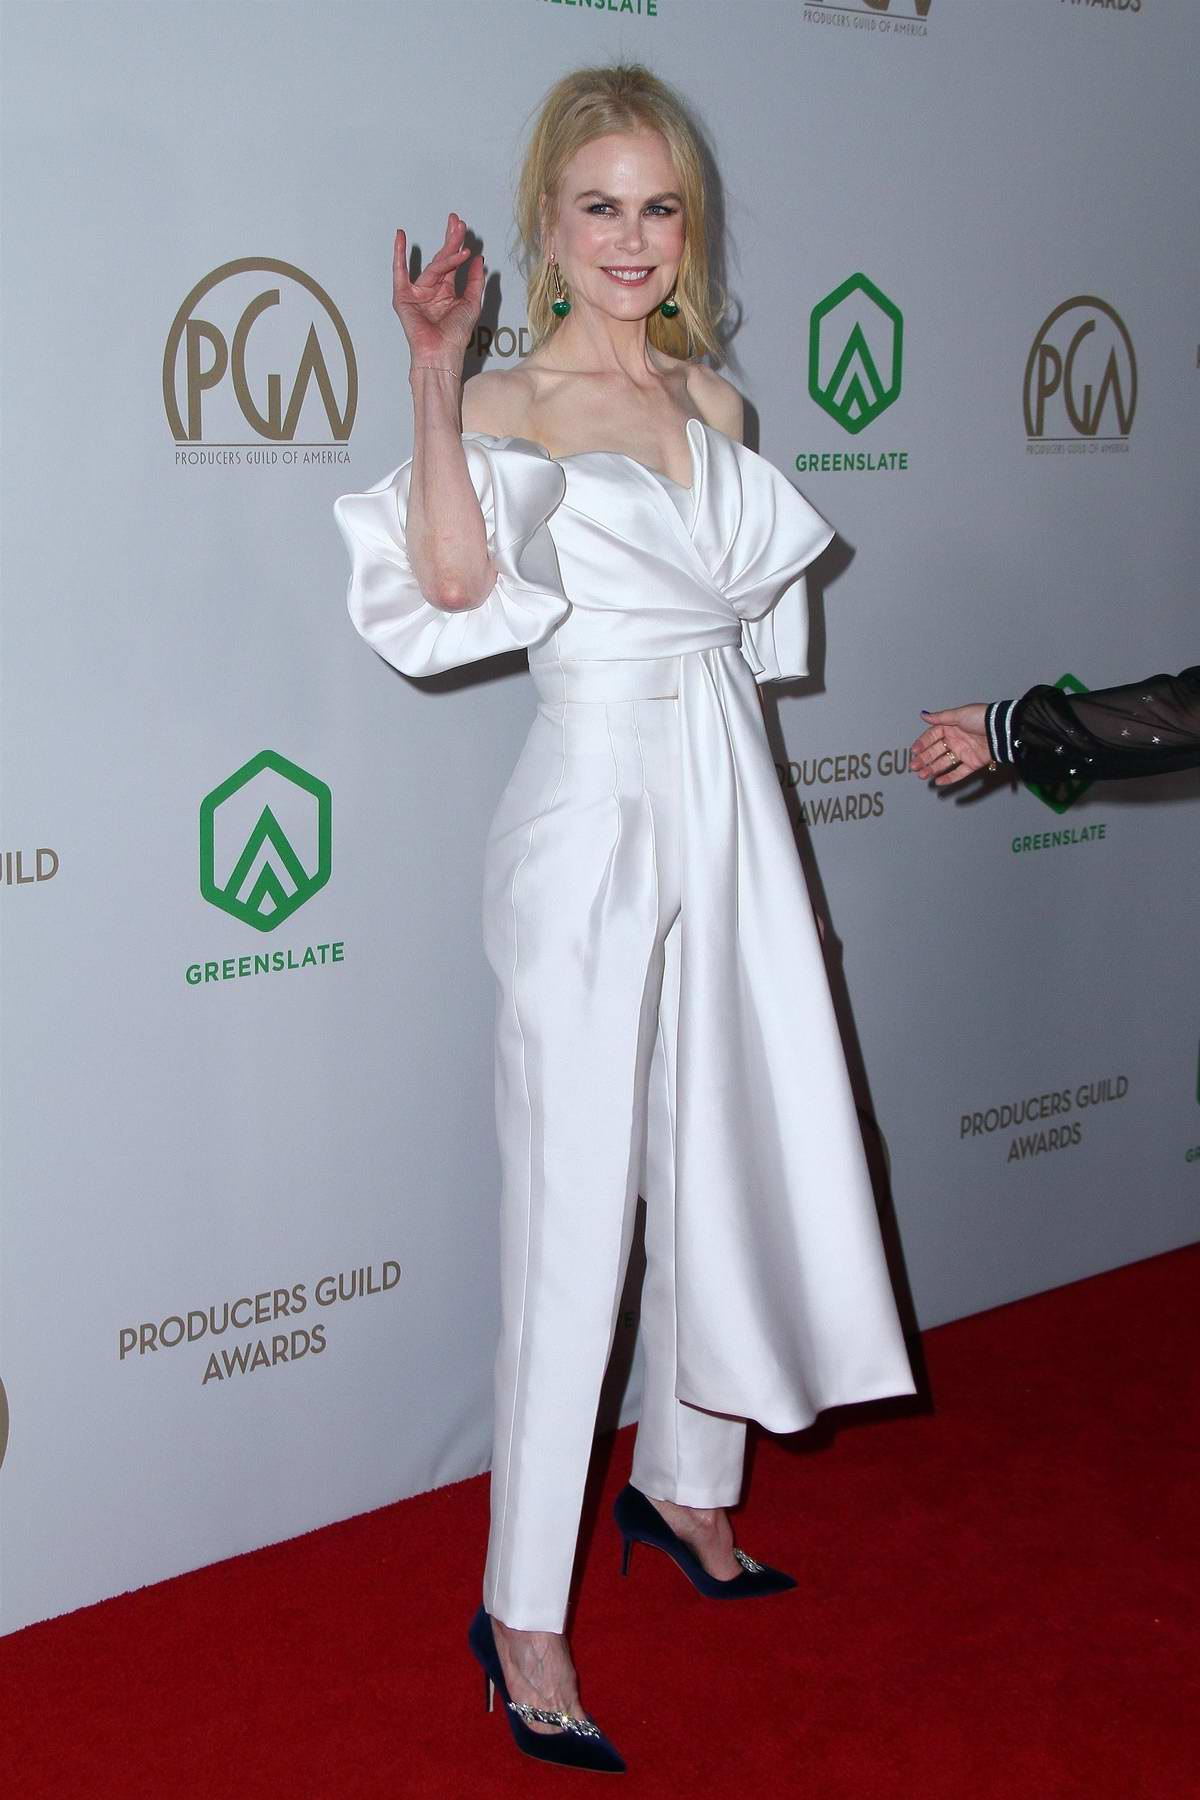 Nicole Kidman attends the 31st Annual Producers Guild Awards in Los Angeles